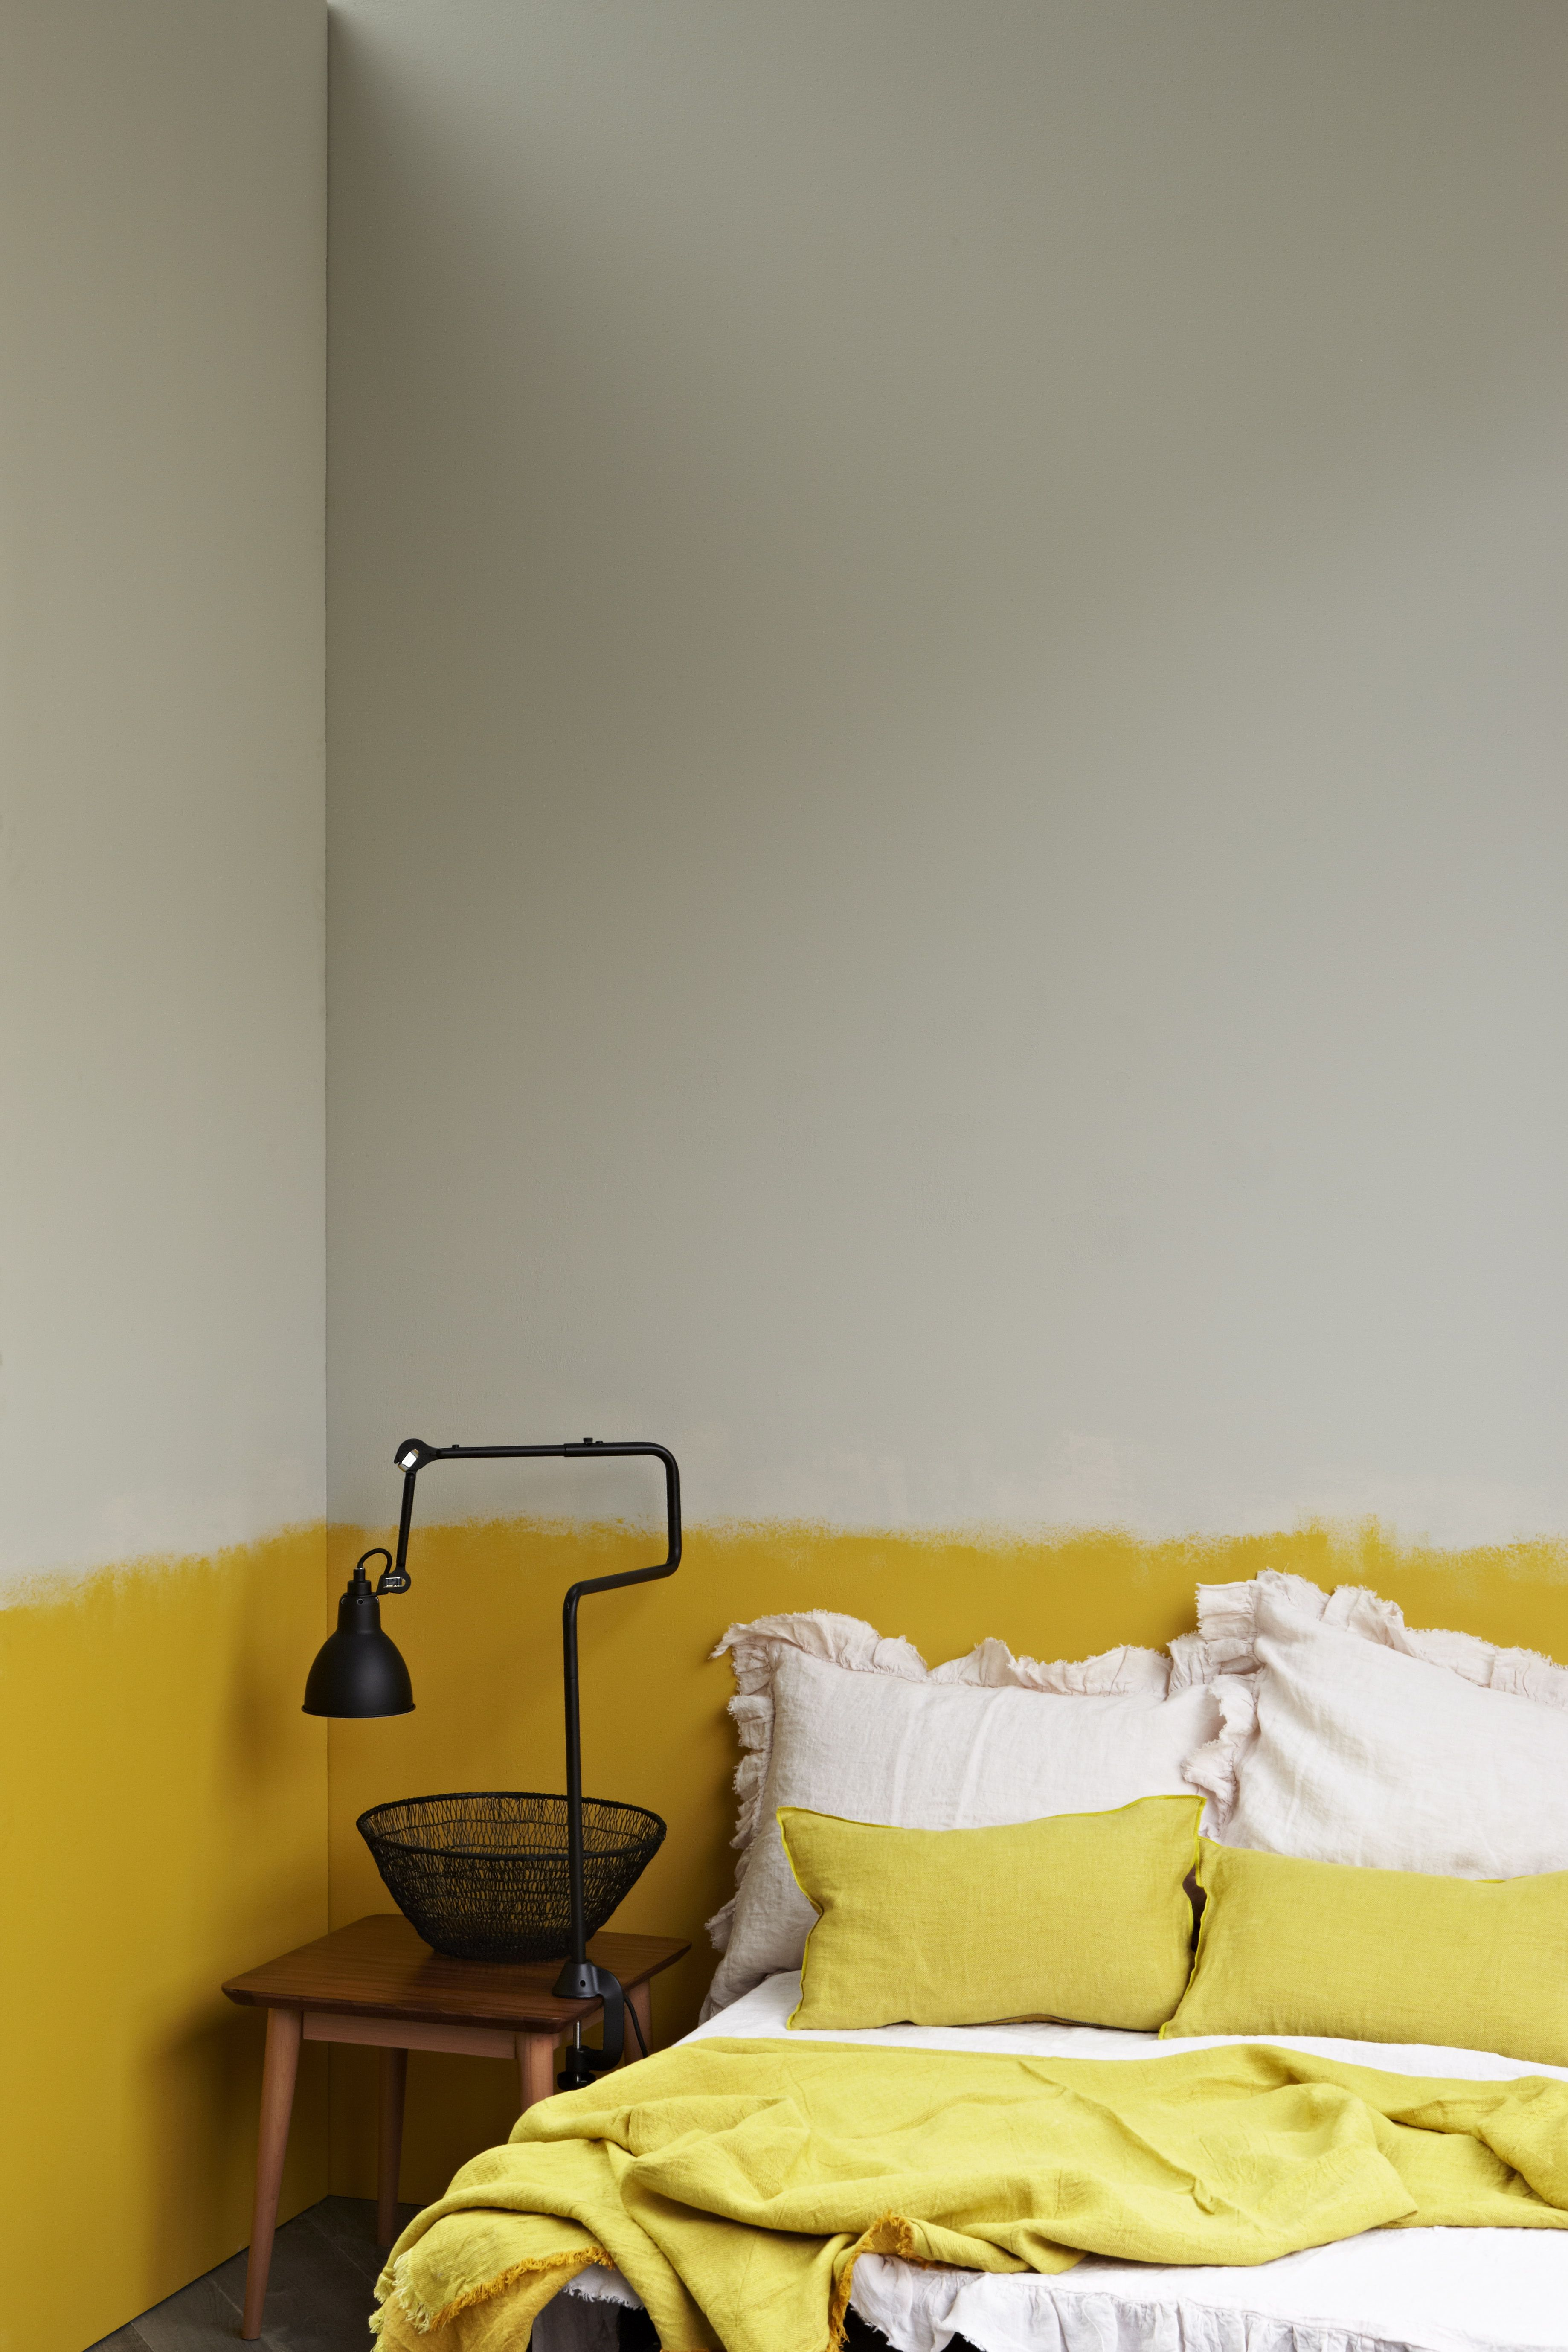 22 Clever Color Blocking Paint Ideas To Make Your Walls Pop Half Painted Walls Interior Home Decor